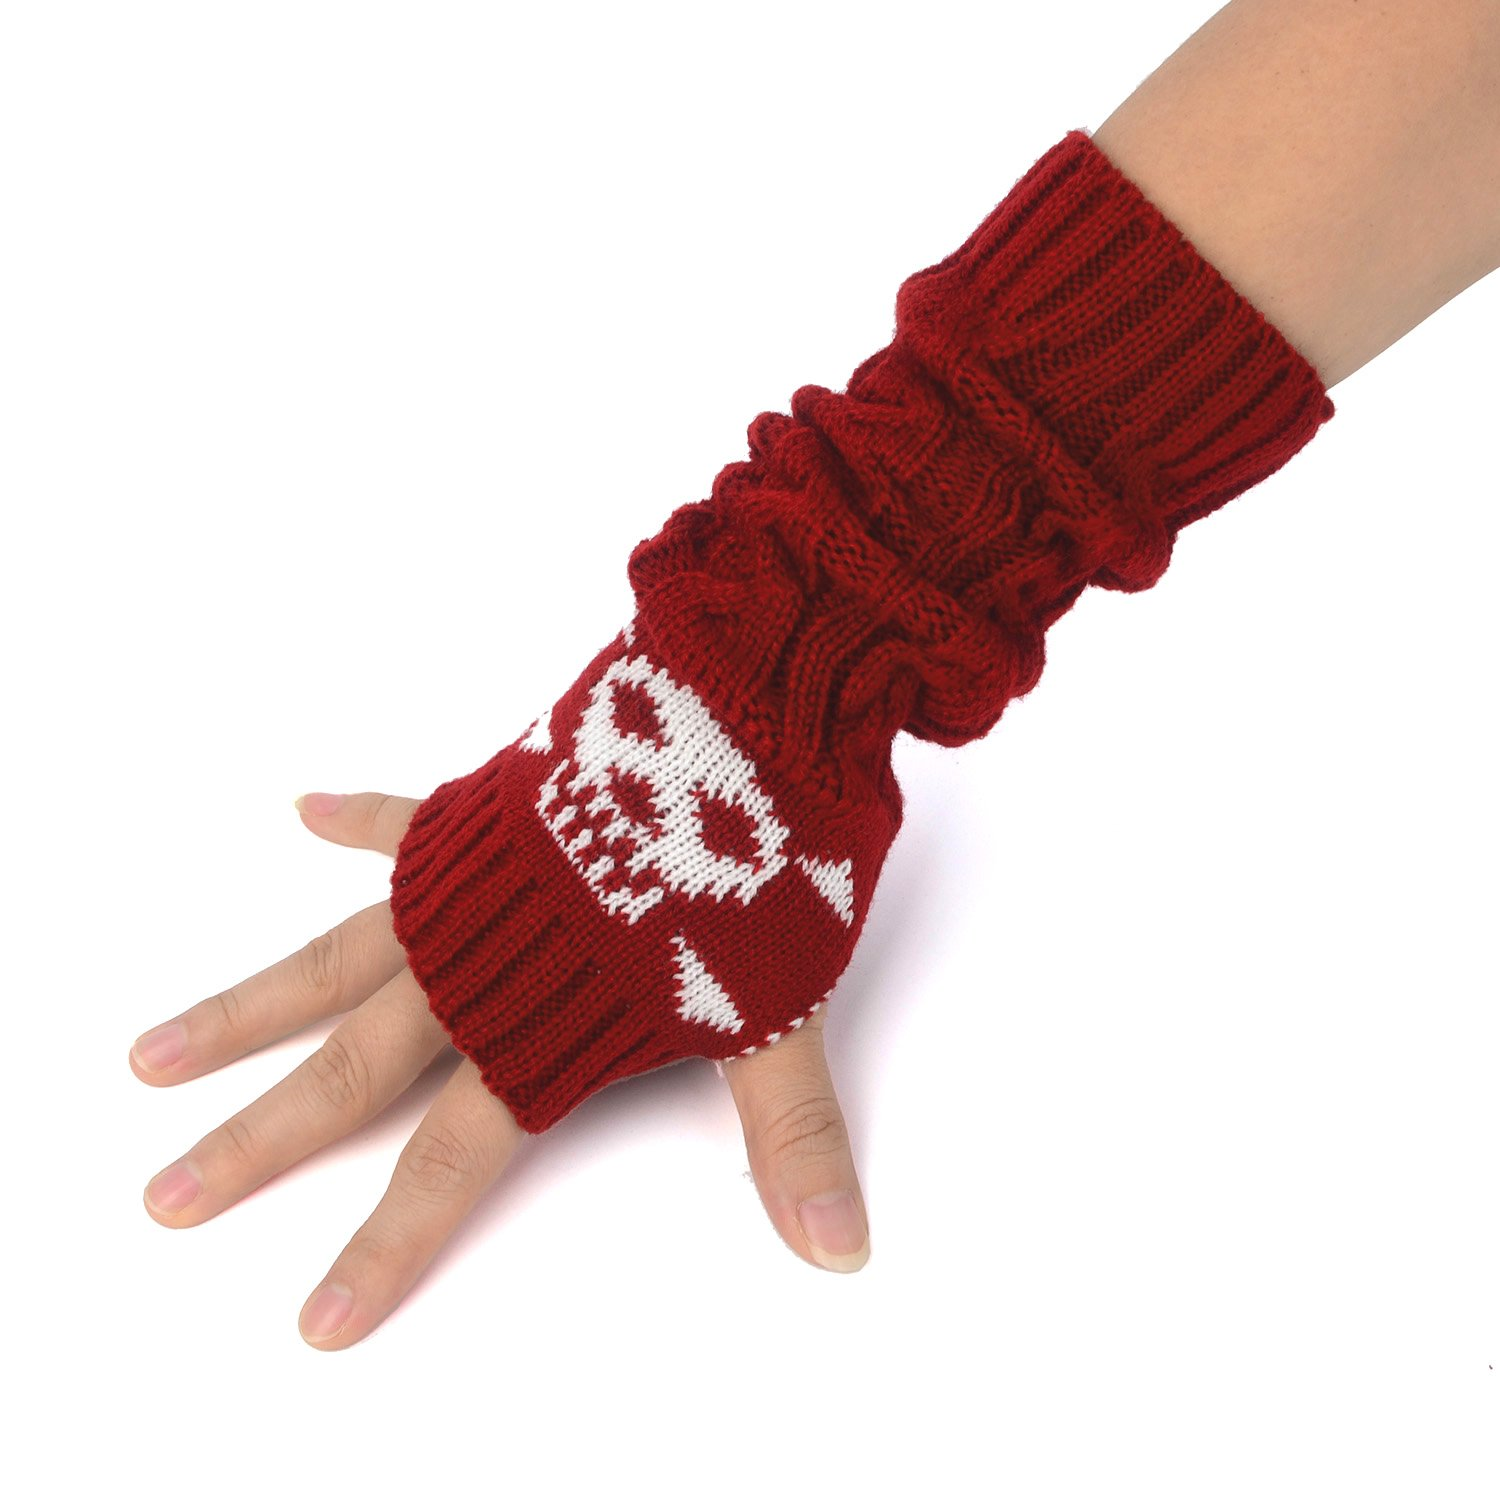 Zeltauto Unisex Knitted Arm Warmer Fingerless Thumbhole Gloves Acrylic Fiber